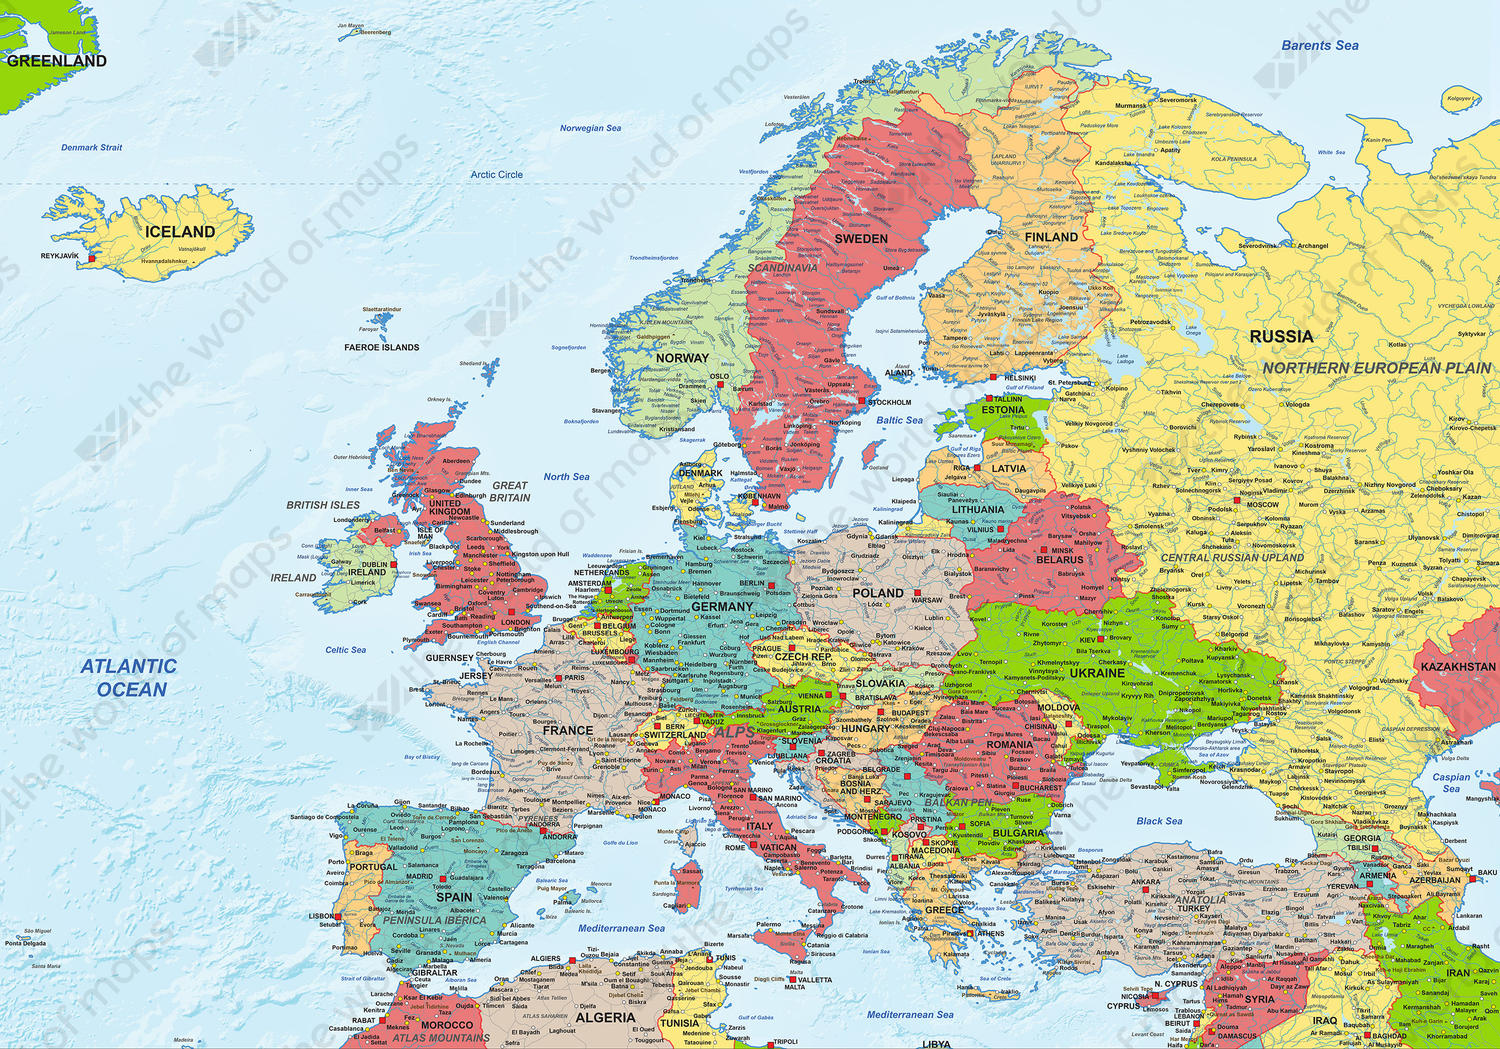 Digital Map Europe Political 1281 The World of Mapscom